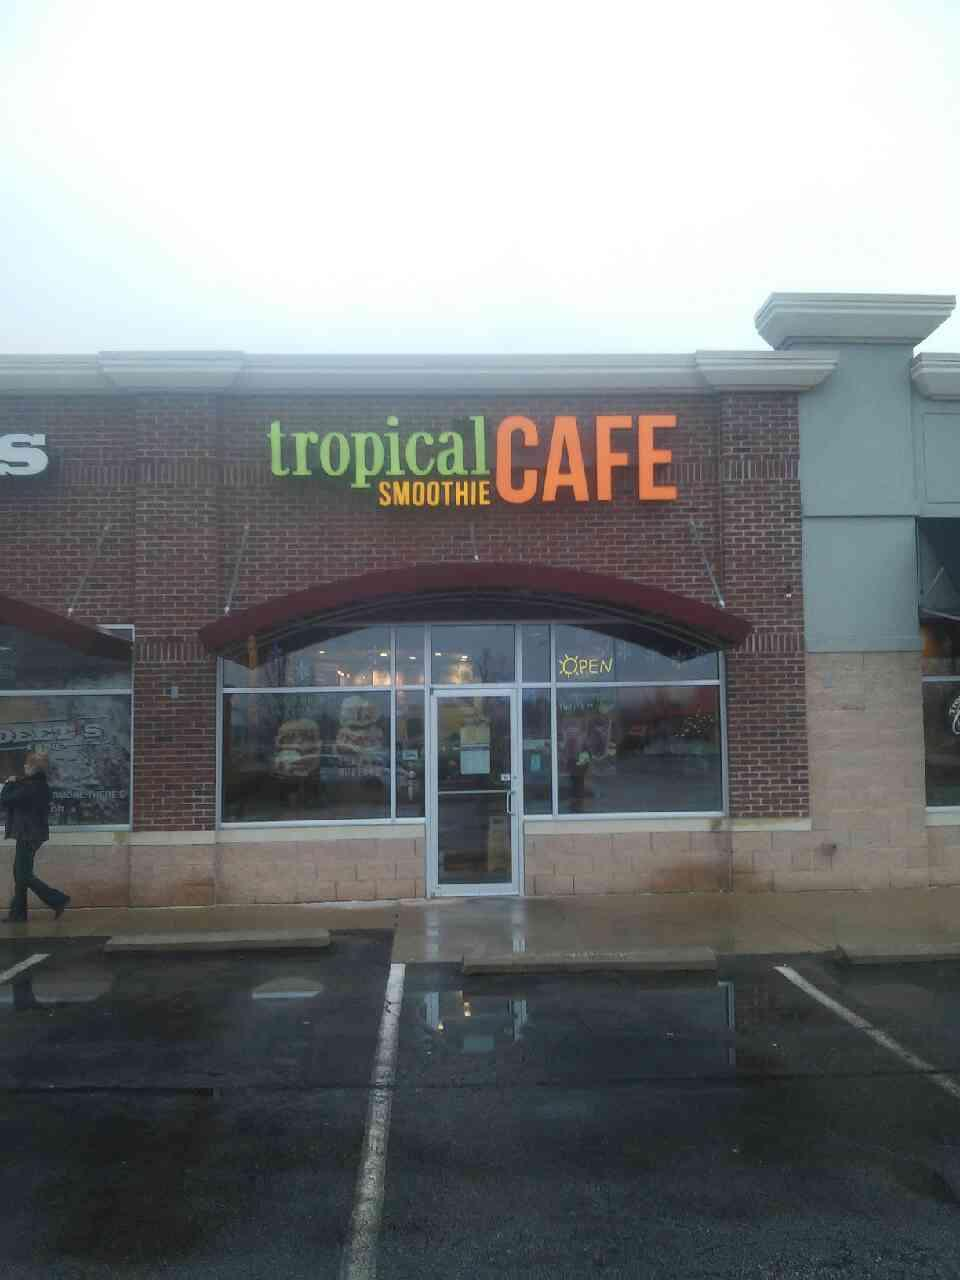 Tropical Cafe Smoothie